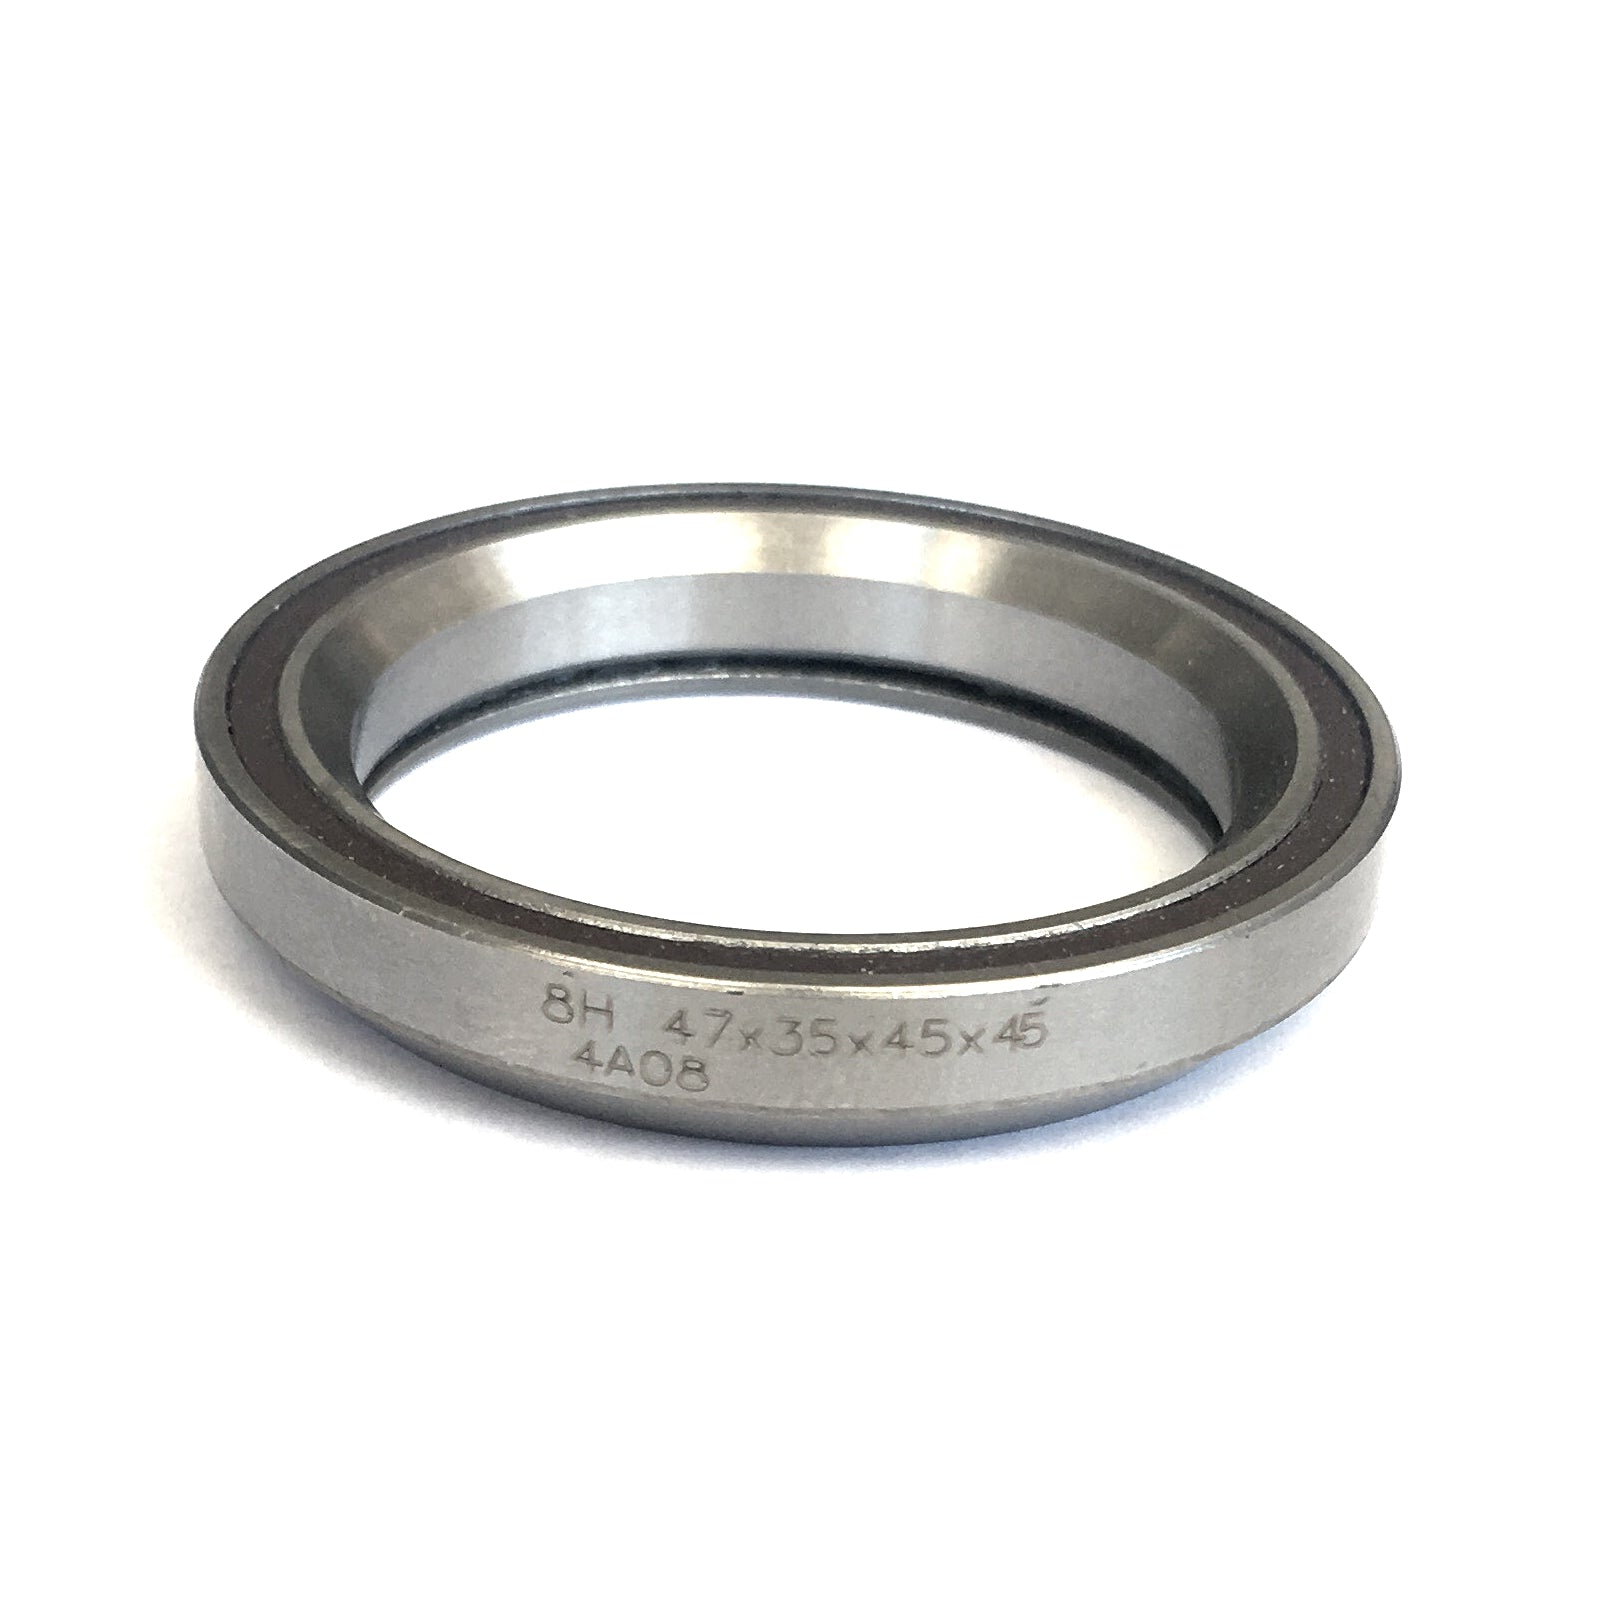 "Sealed Headset Bearing 1.25"" 34.1x46.8x7 45deg"